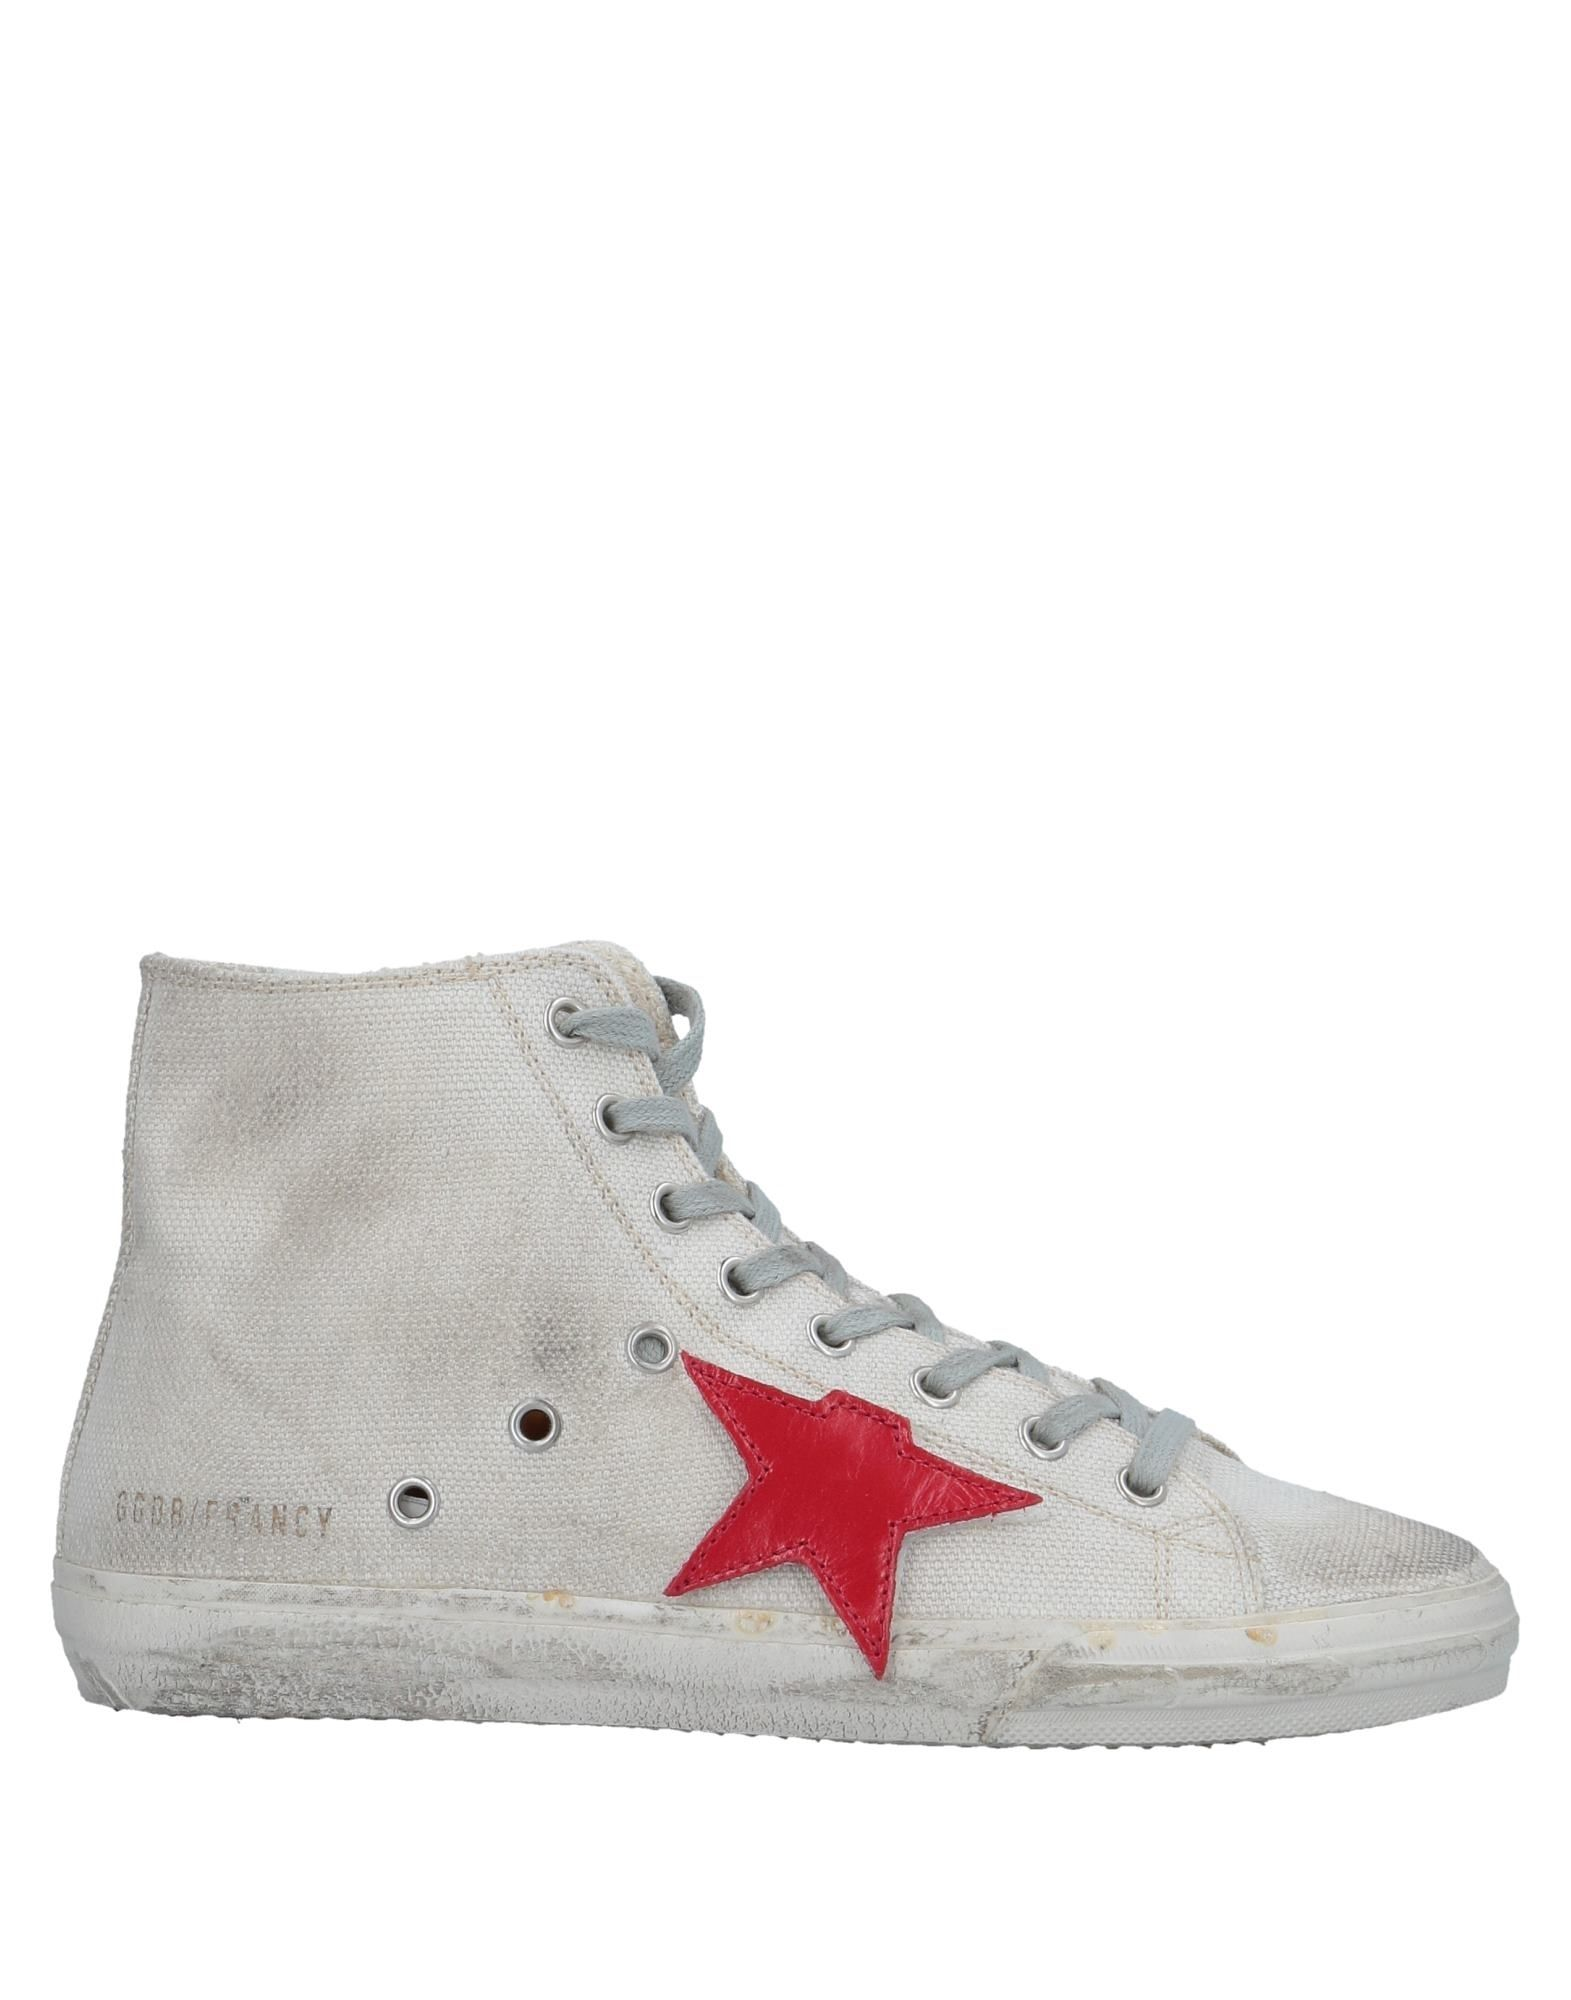 Sneakers Golden Goose Deluxe Brand Donna - 11507042WB